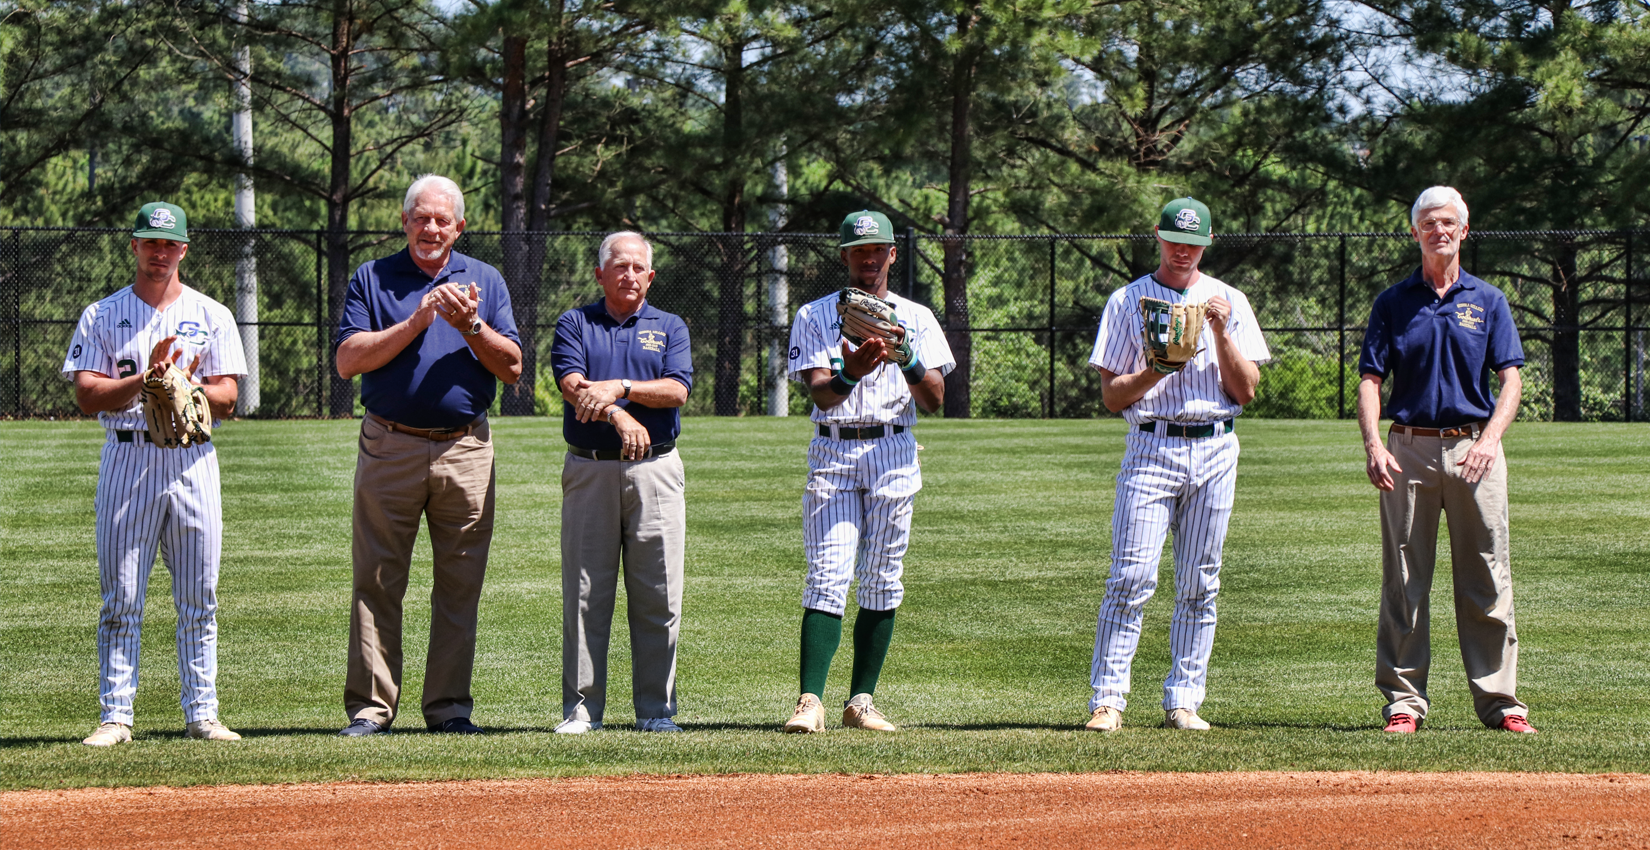 Members of the 1969 Georgia College Baseball team join the current players on the field